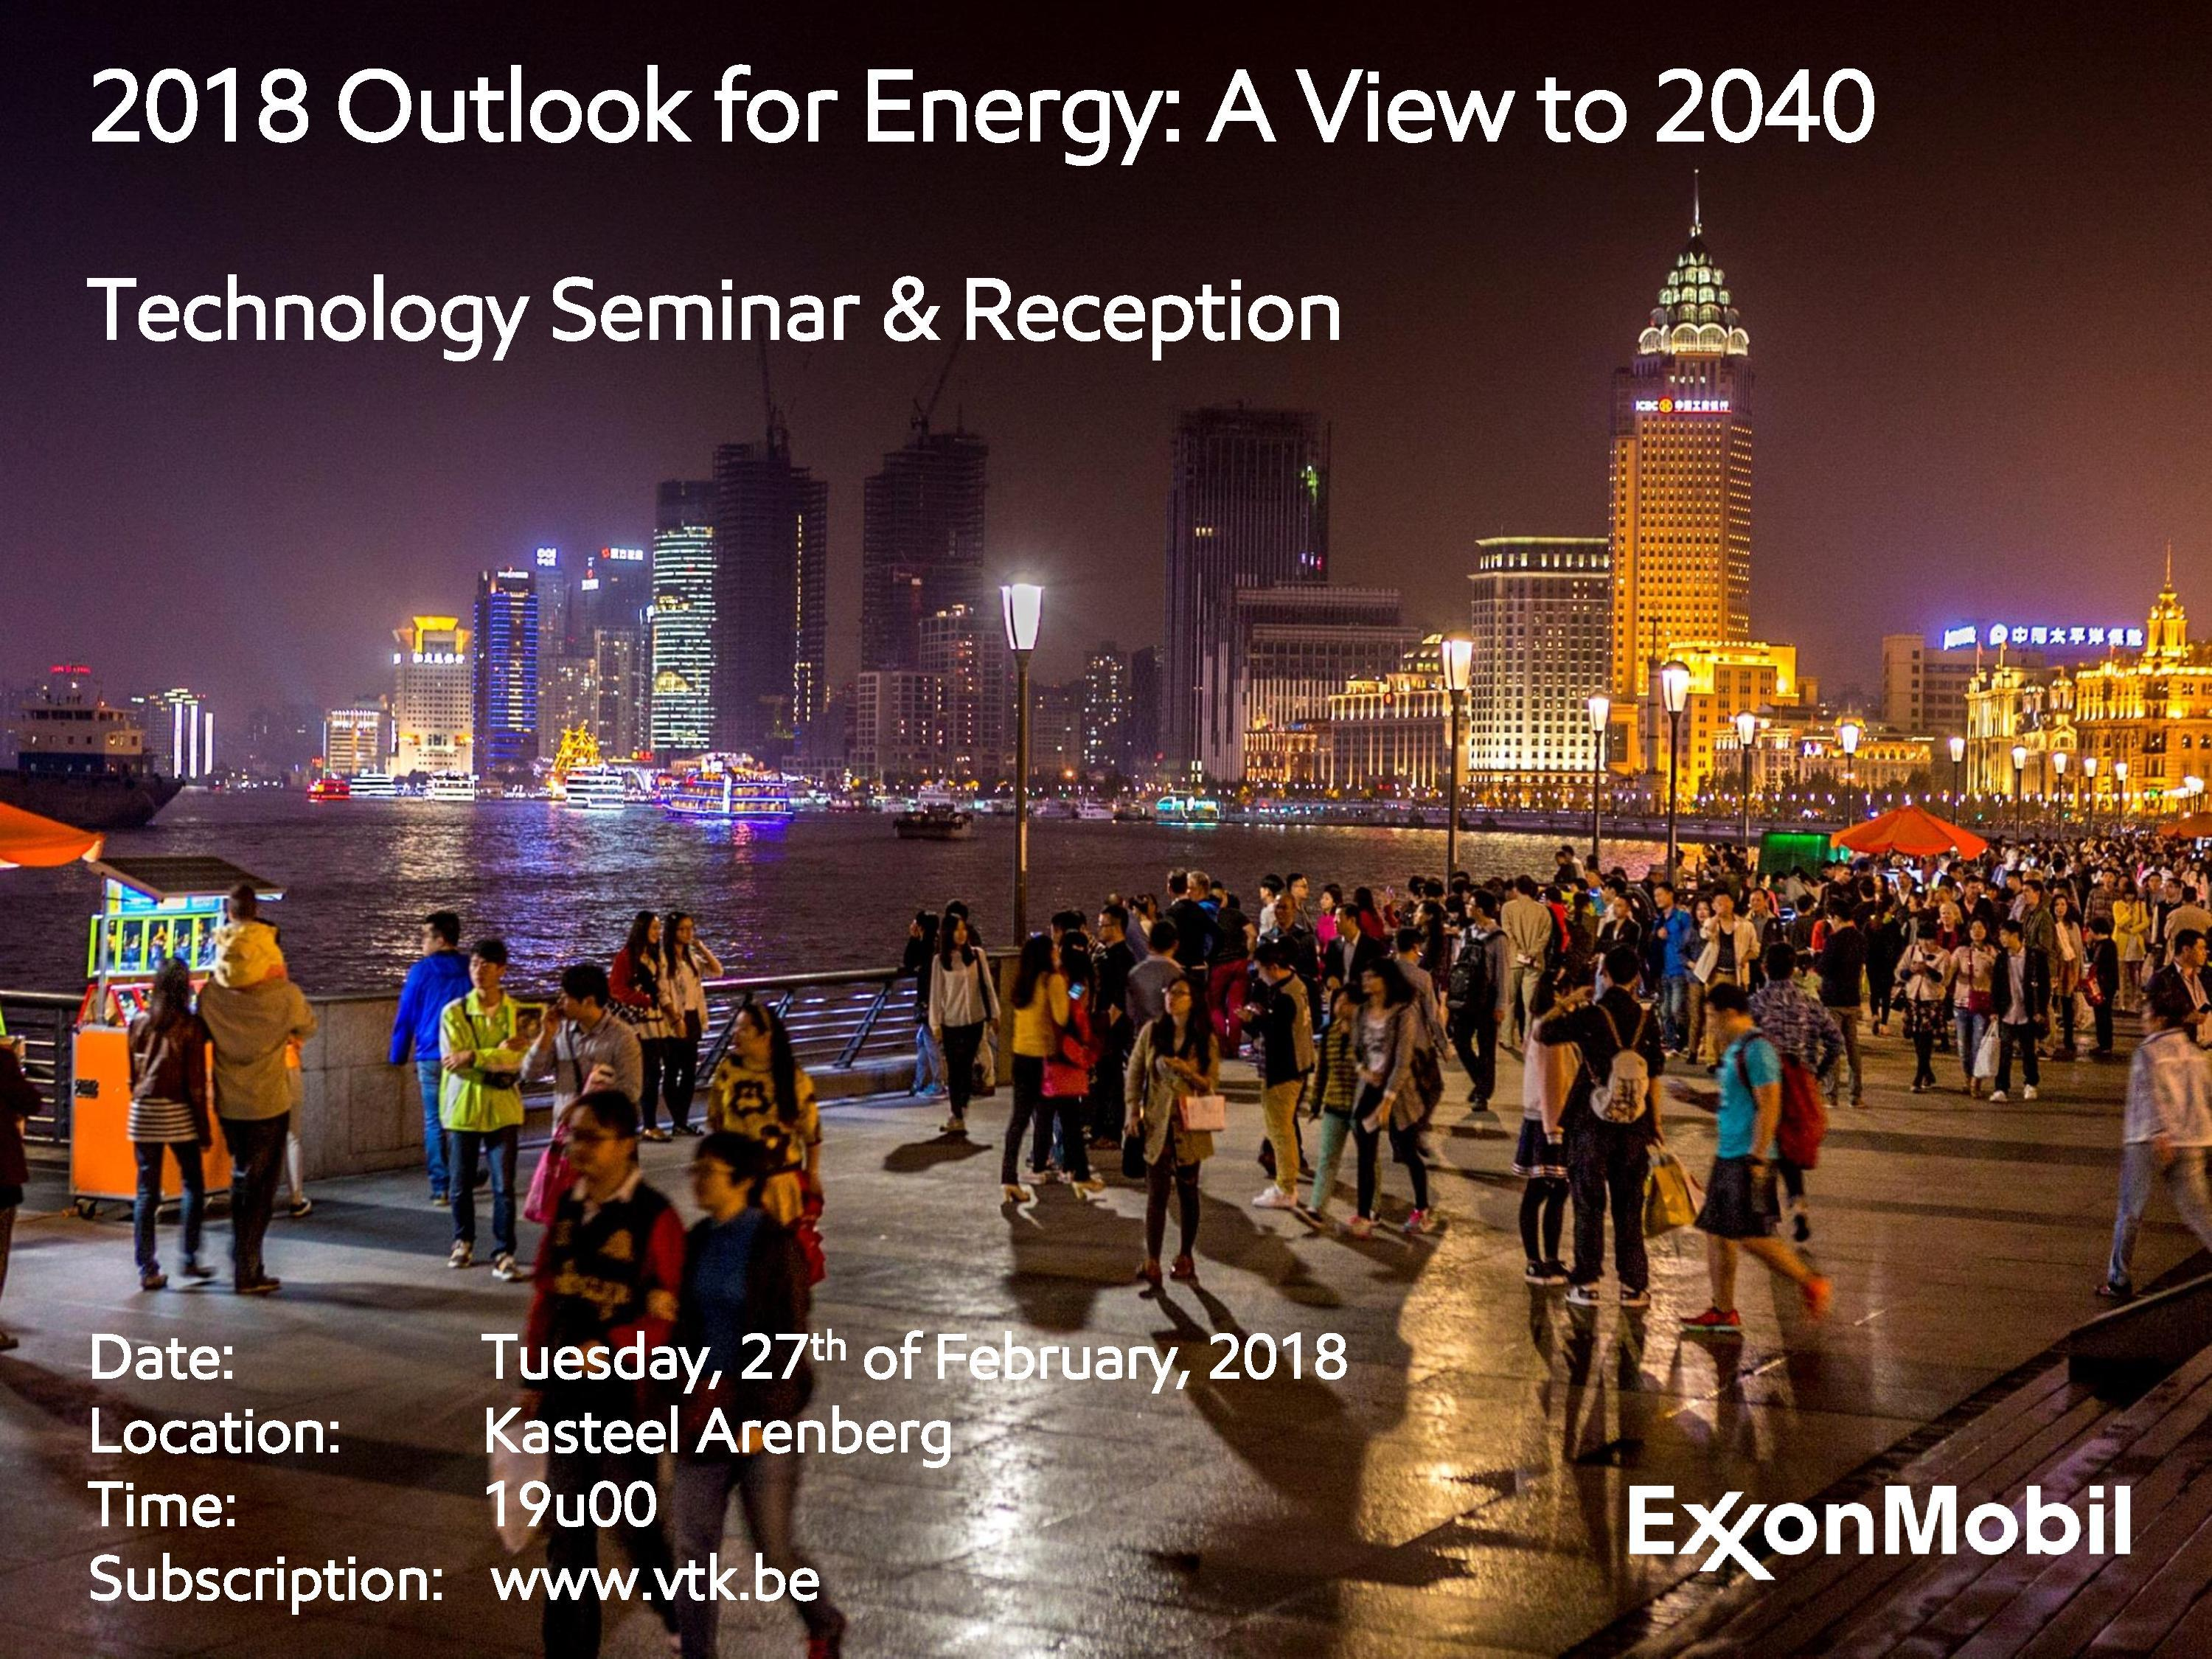 ExxonMobil Technology Seminar & Reception